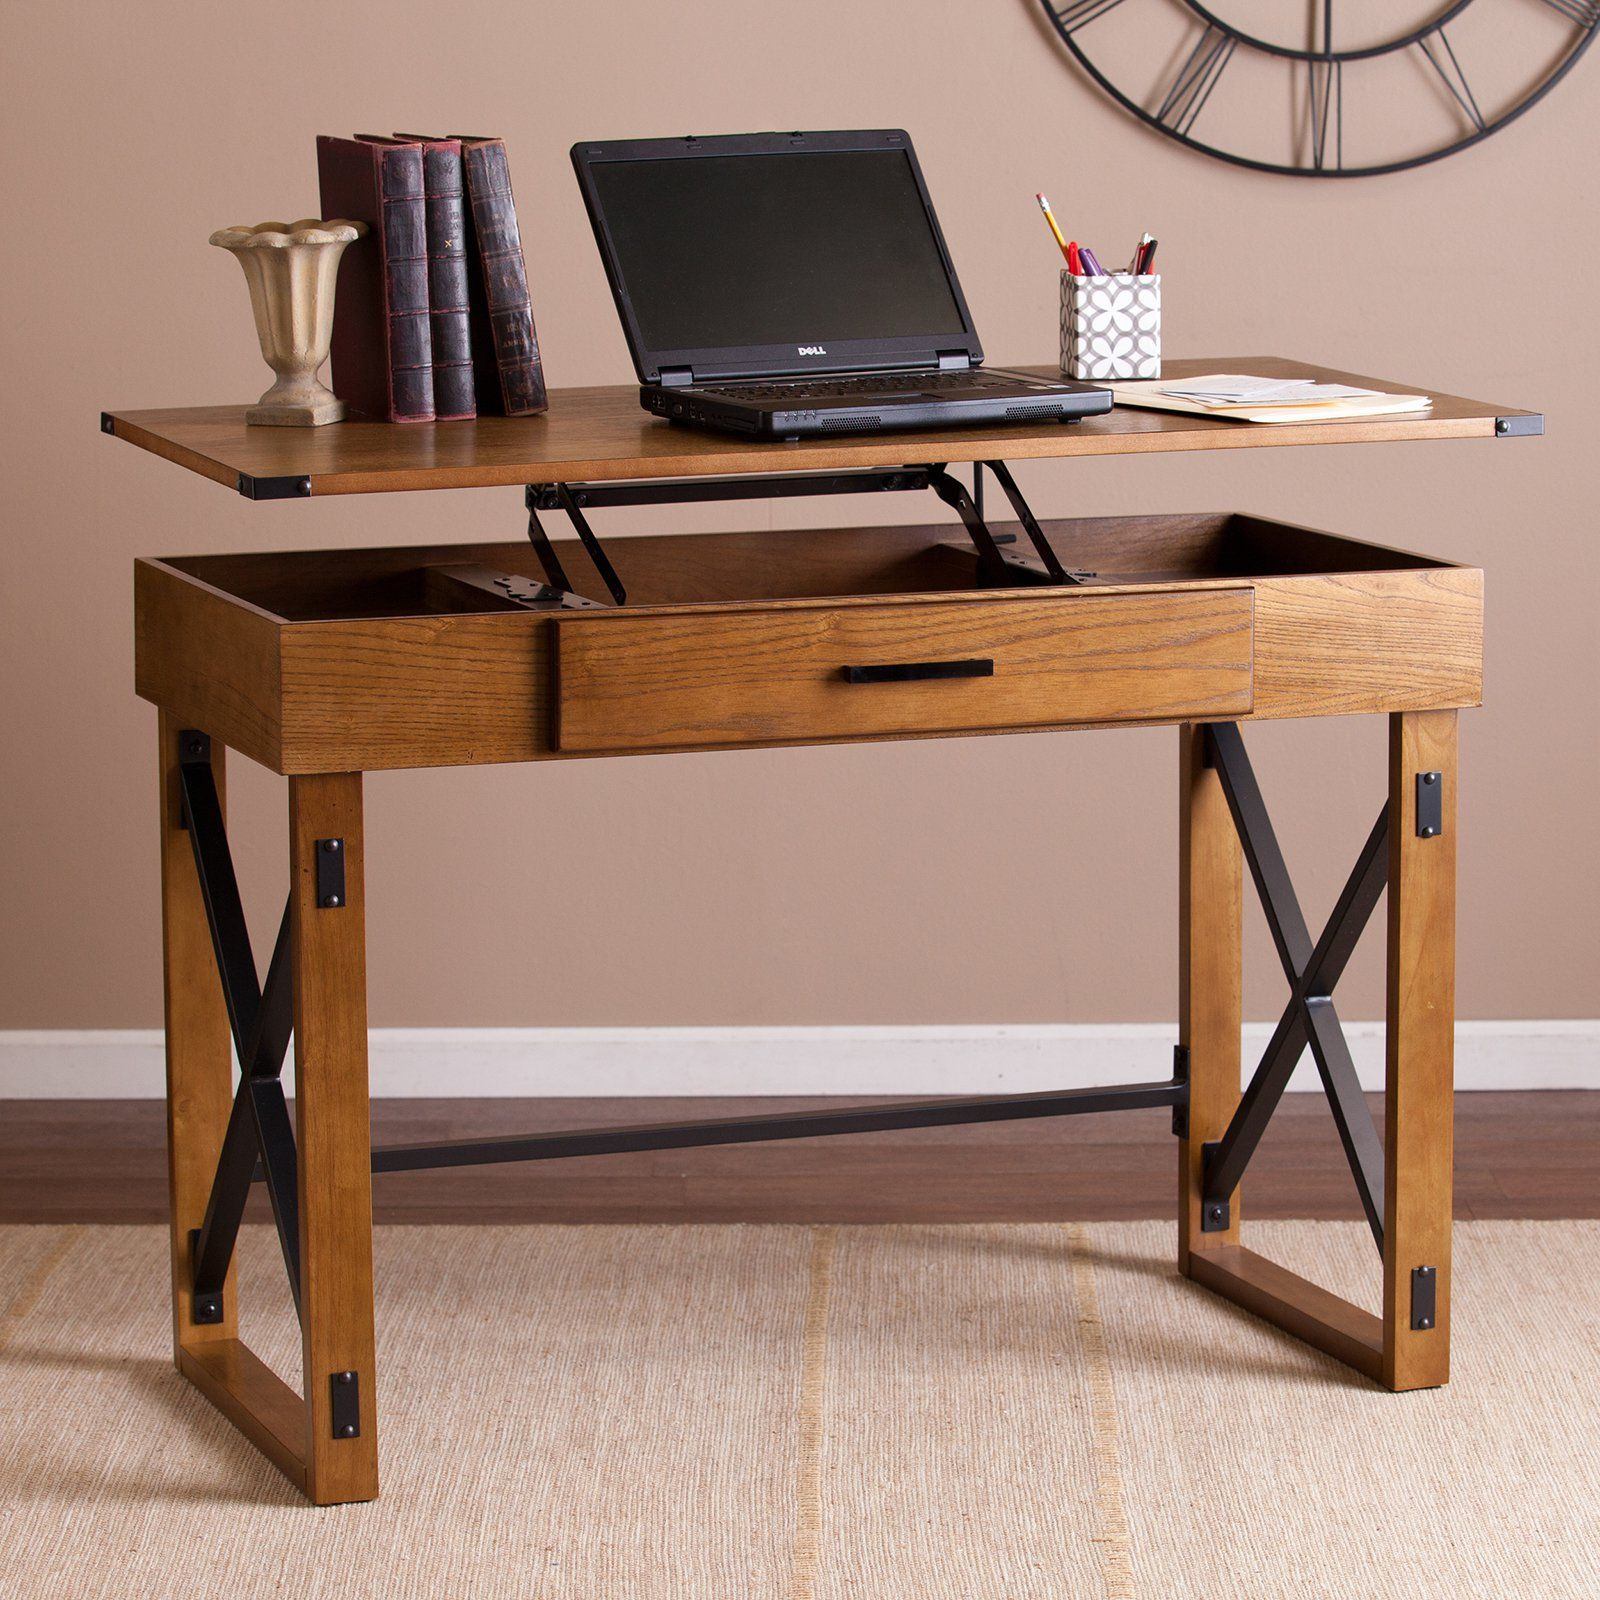 Height Desk Ever Wished You Could Jack Up Your Desktop Meet The Southern Enterprises Canton Adjule Top Easily Raises And Lowers